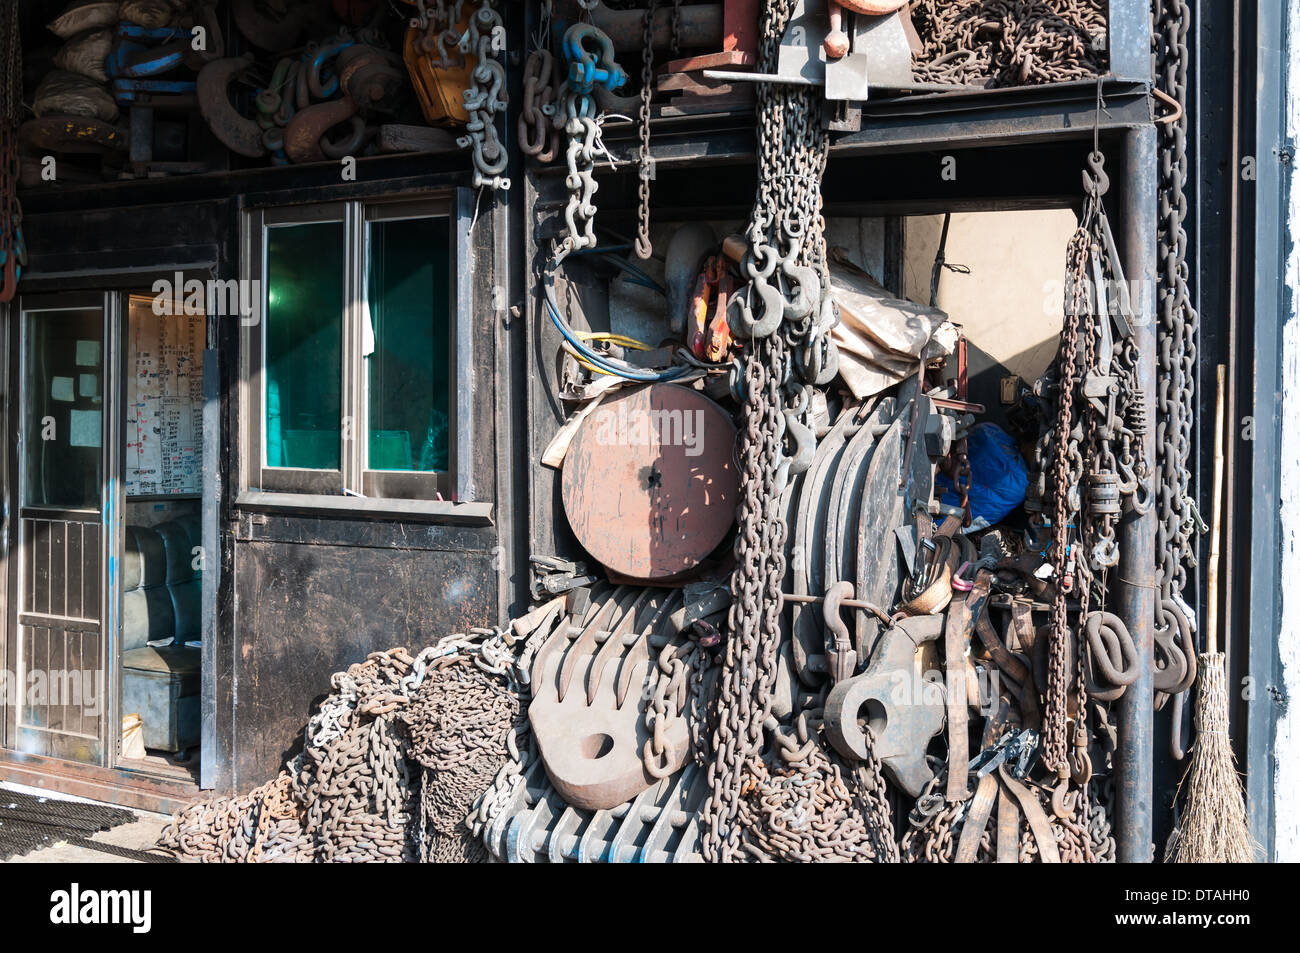 Chains and various tools hanging in a workshop. - Stock Image